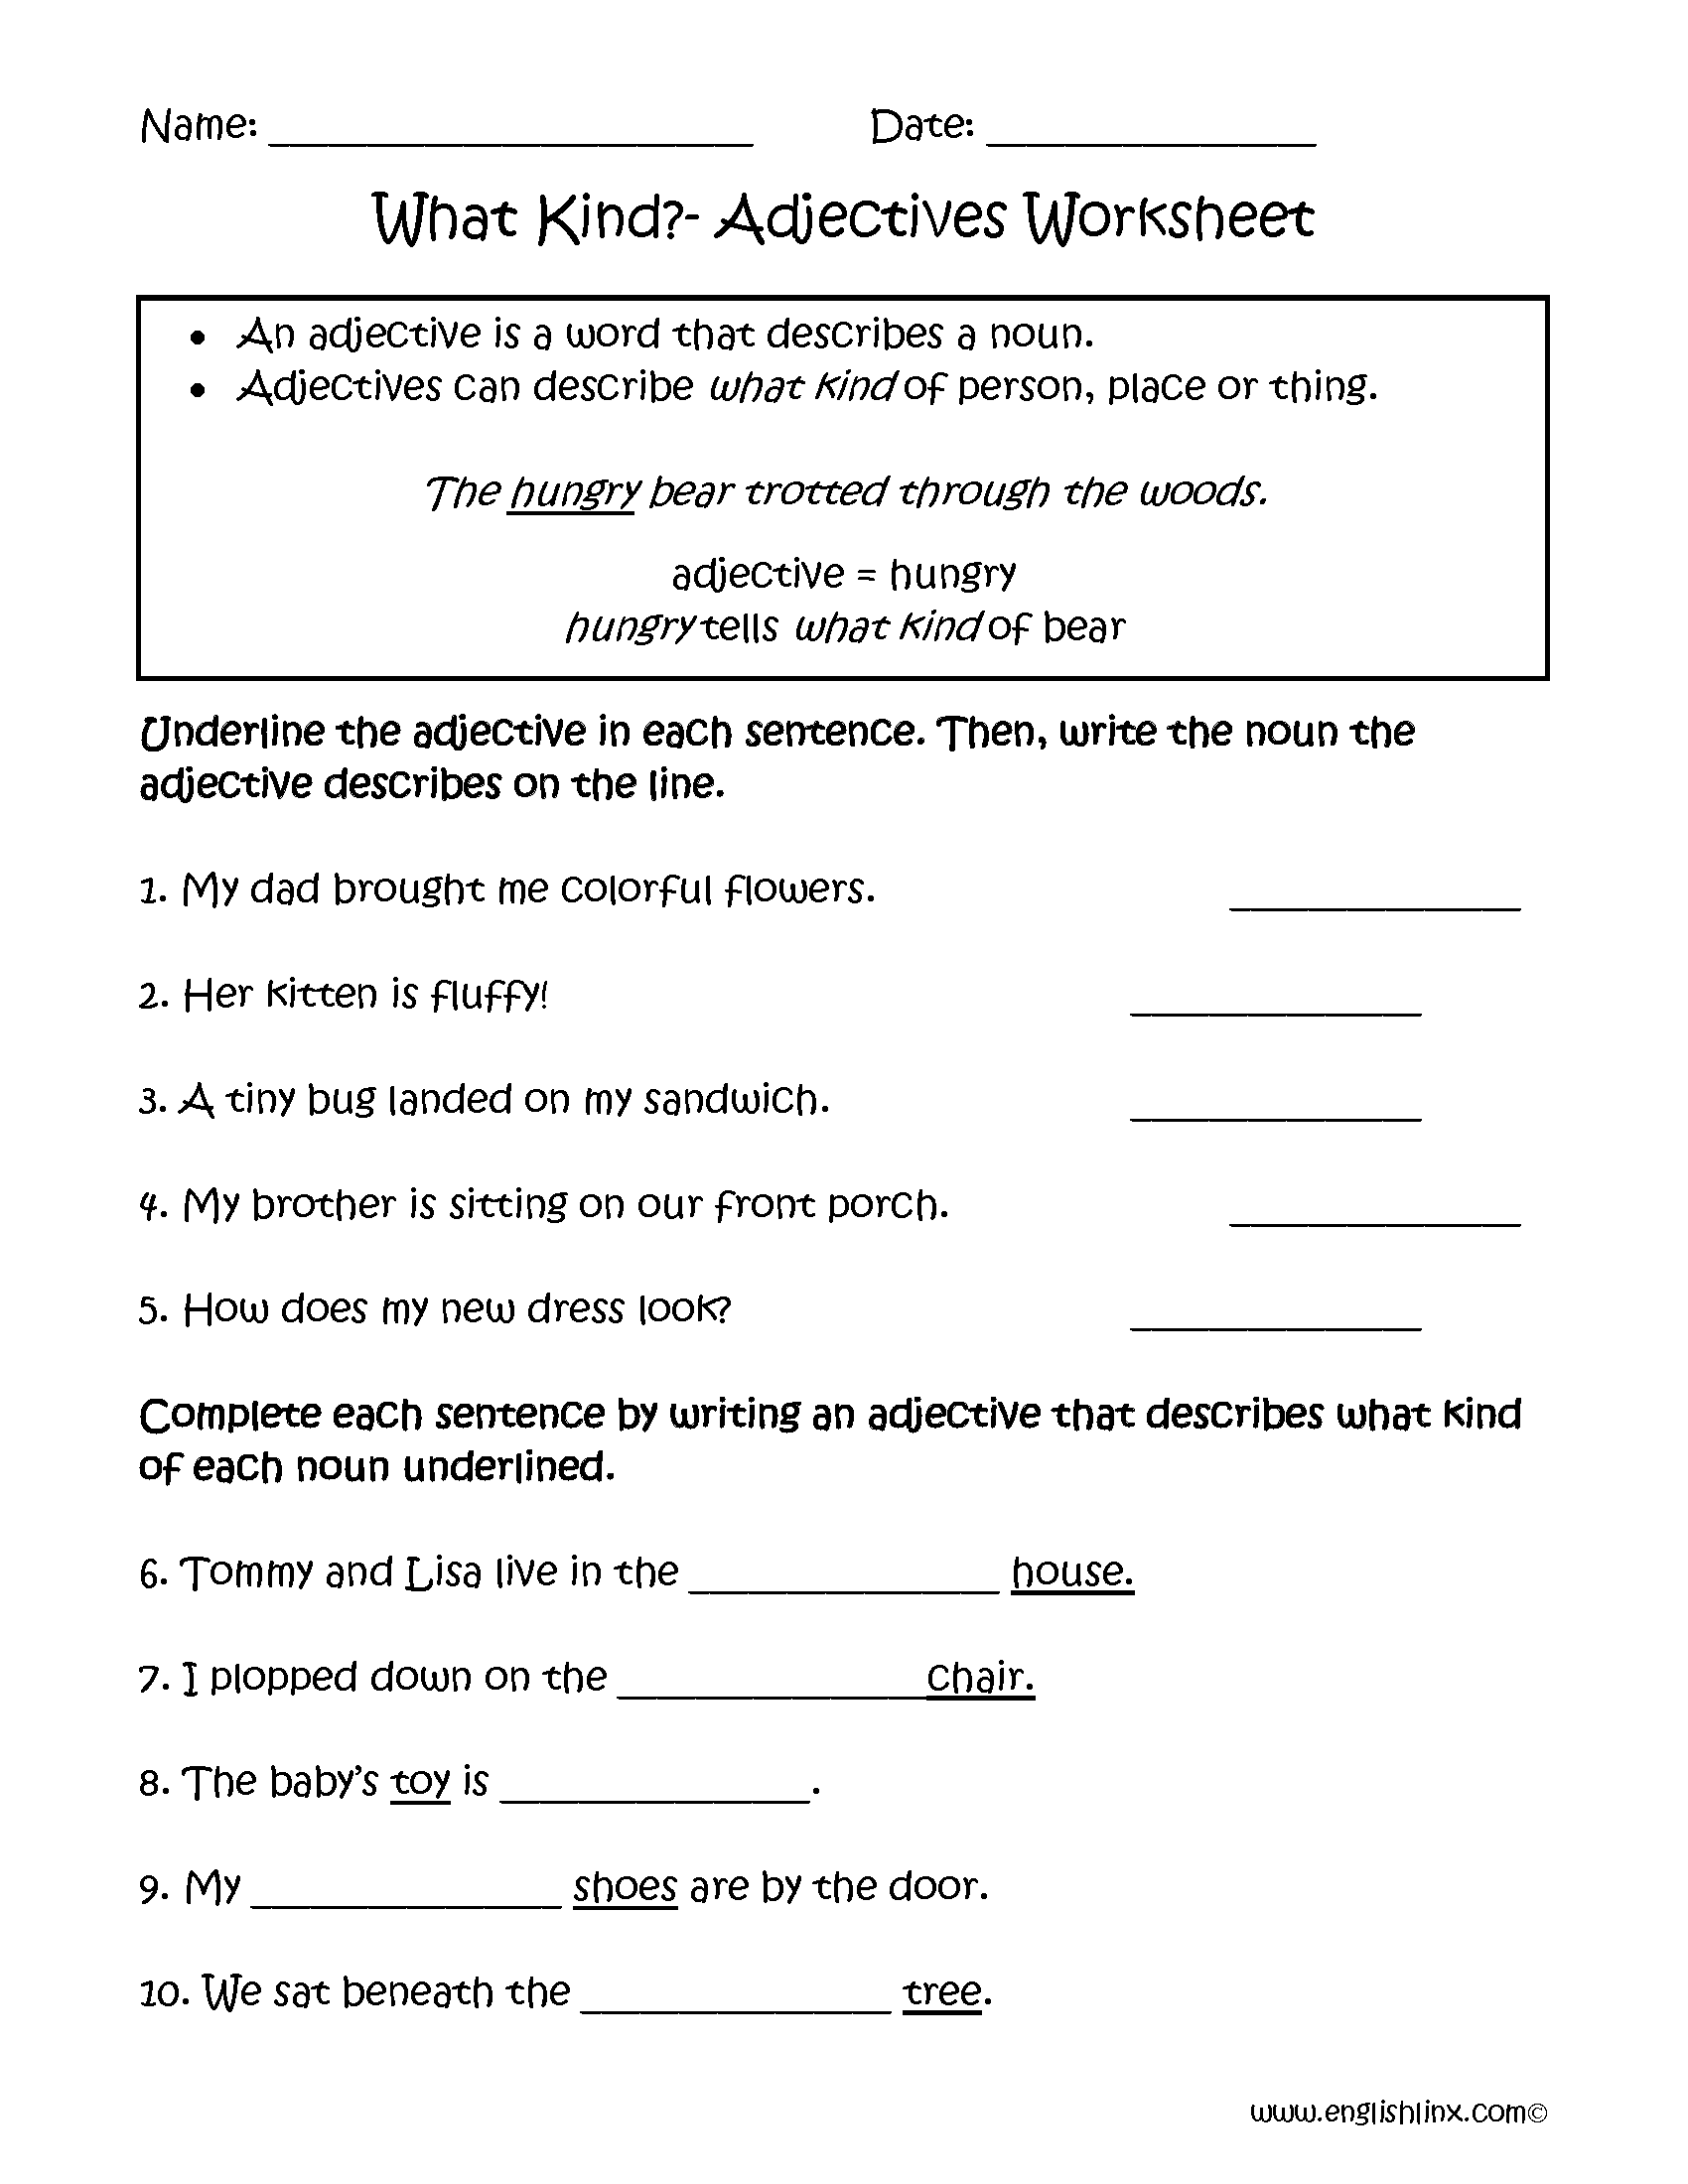 Printables Adjective Worksheet adjectives worksheets regular worksheets